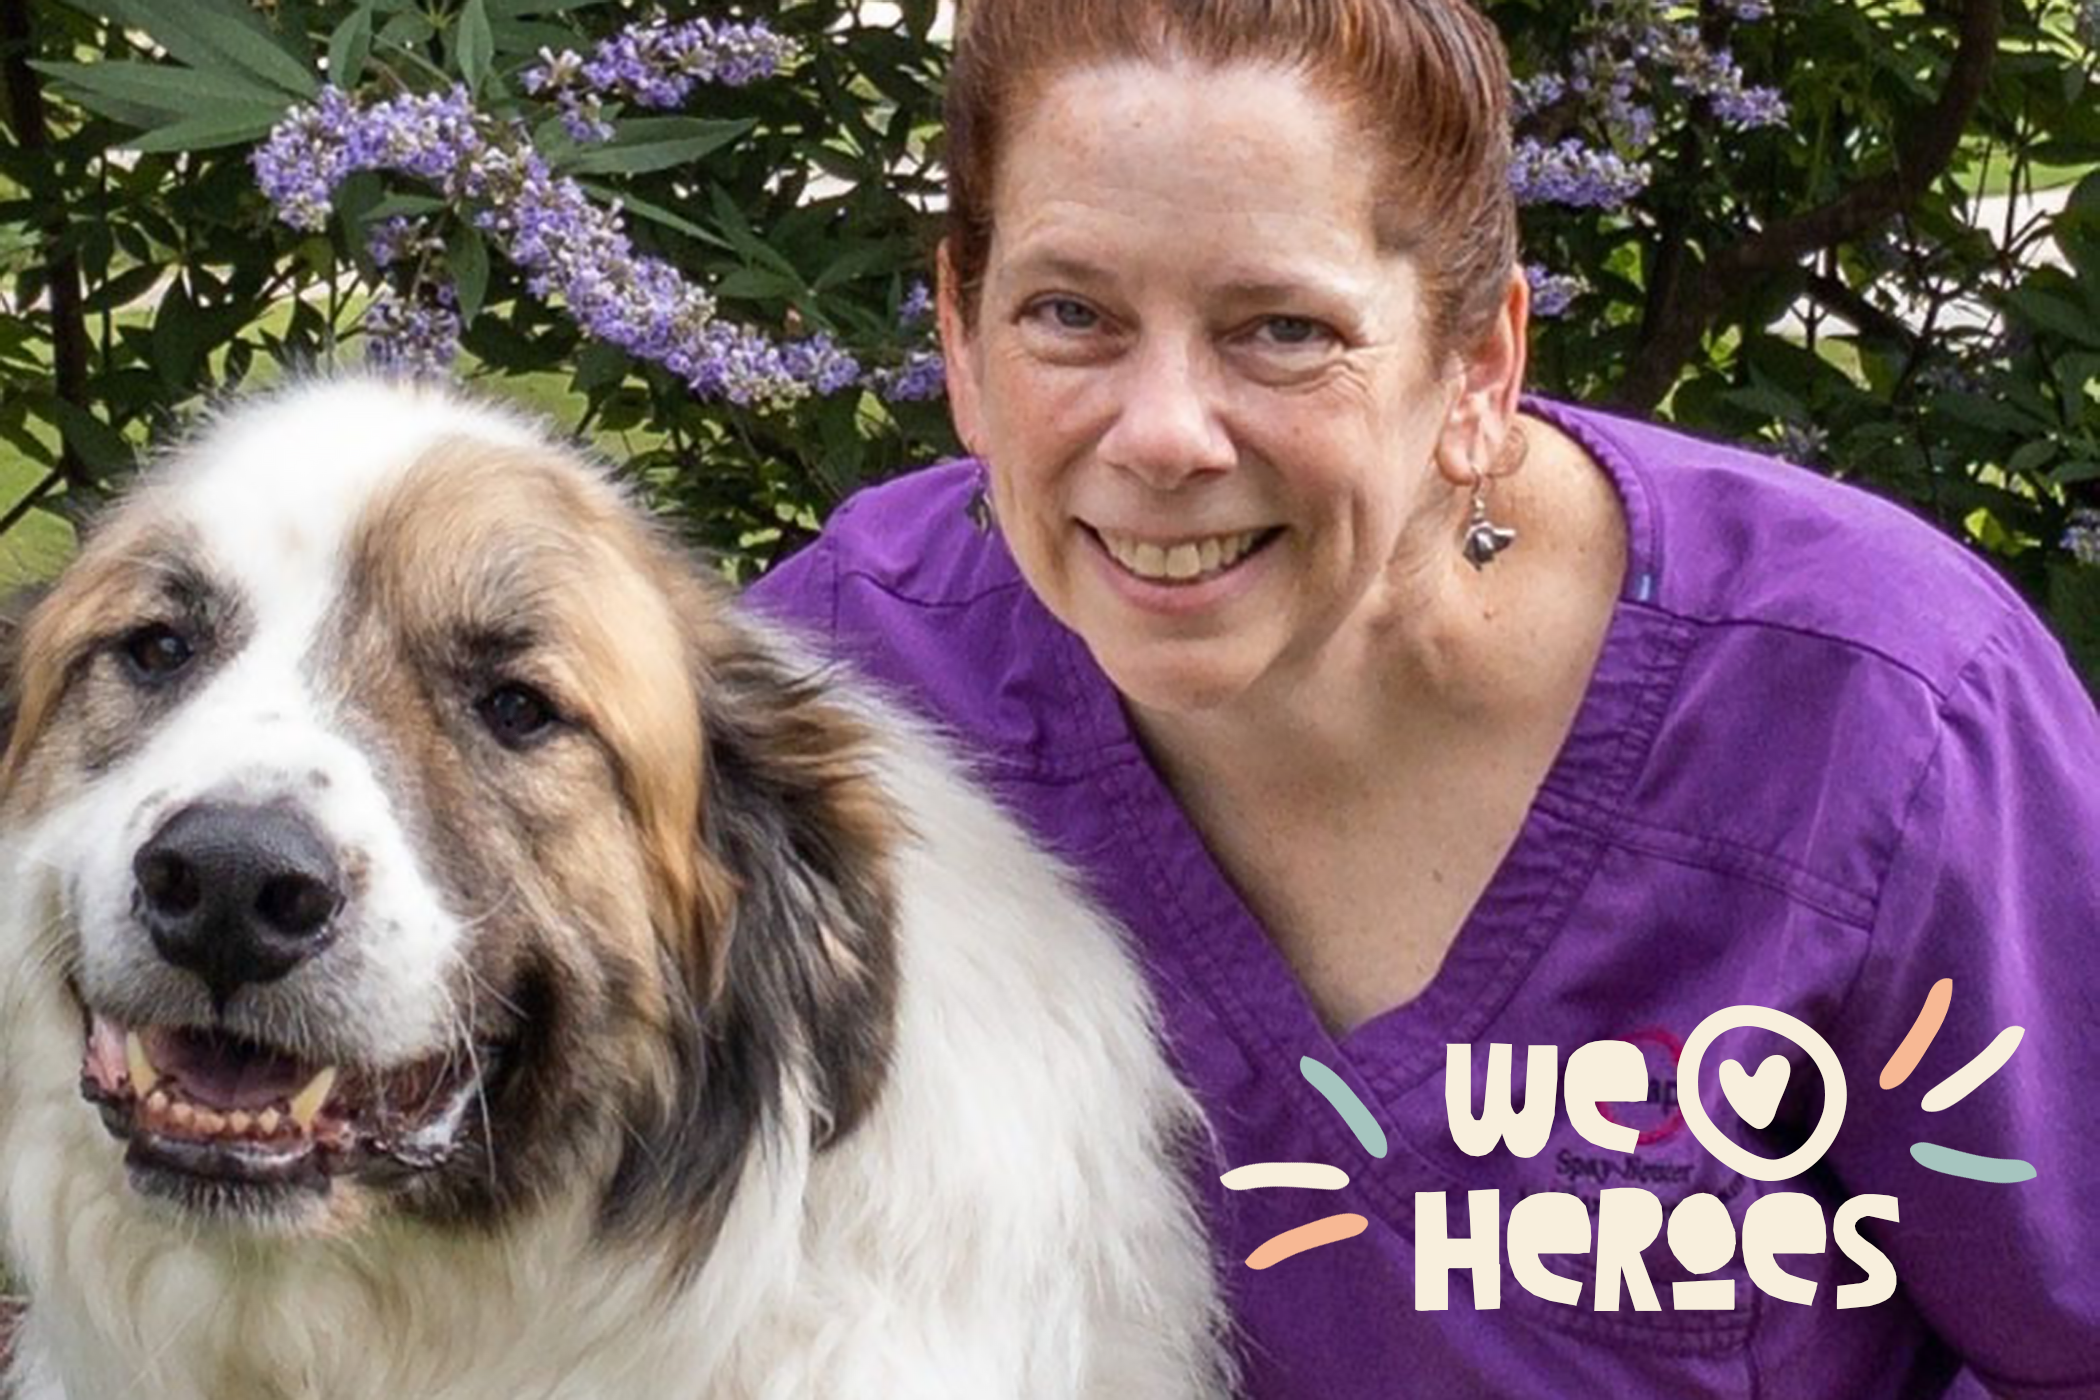 Dr. Mary Kate Lawler, the winner of the 2021 American Humane Hero Veterinarian Award, with her dog